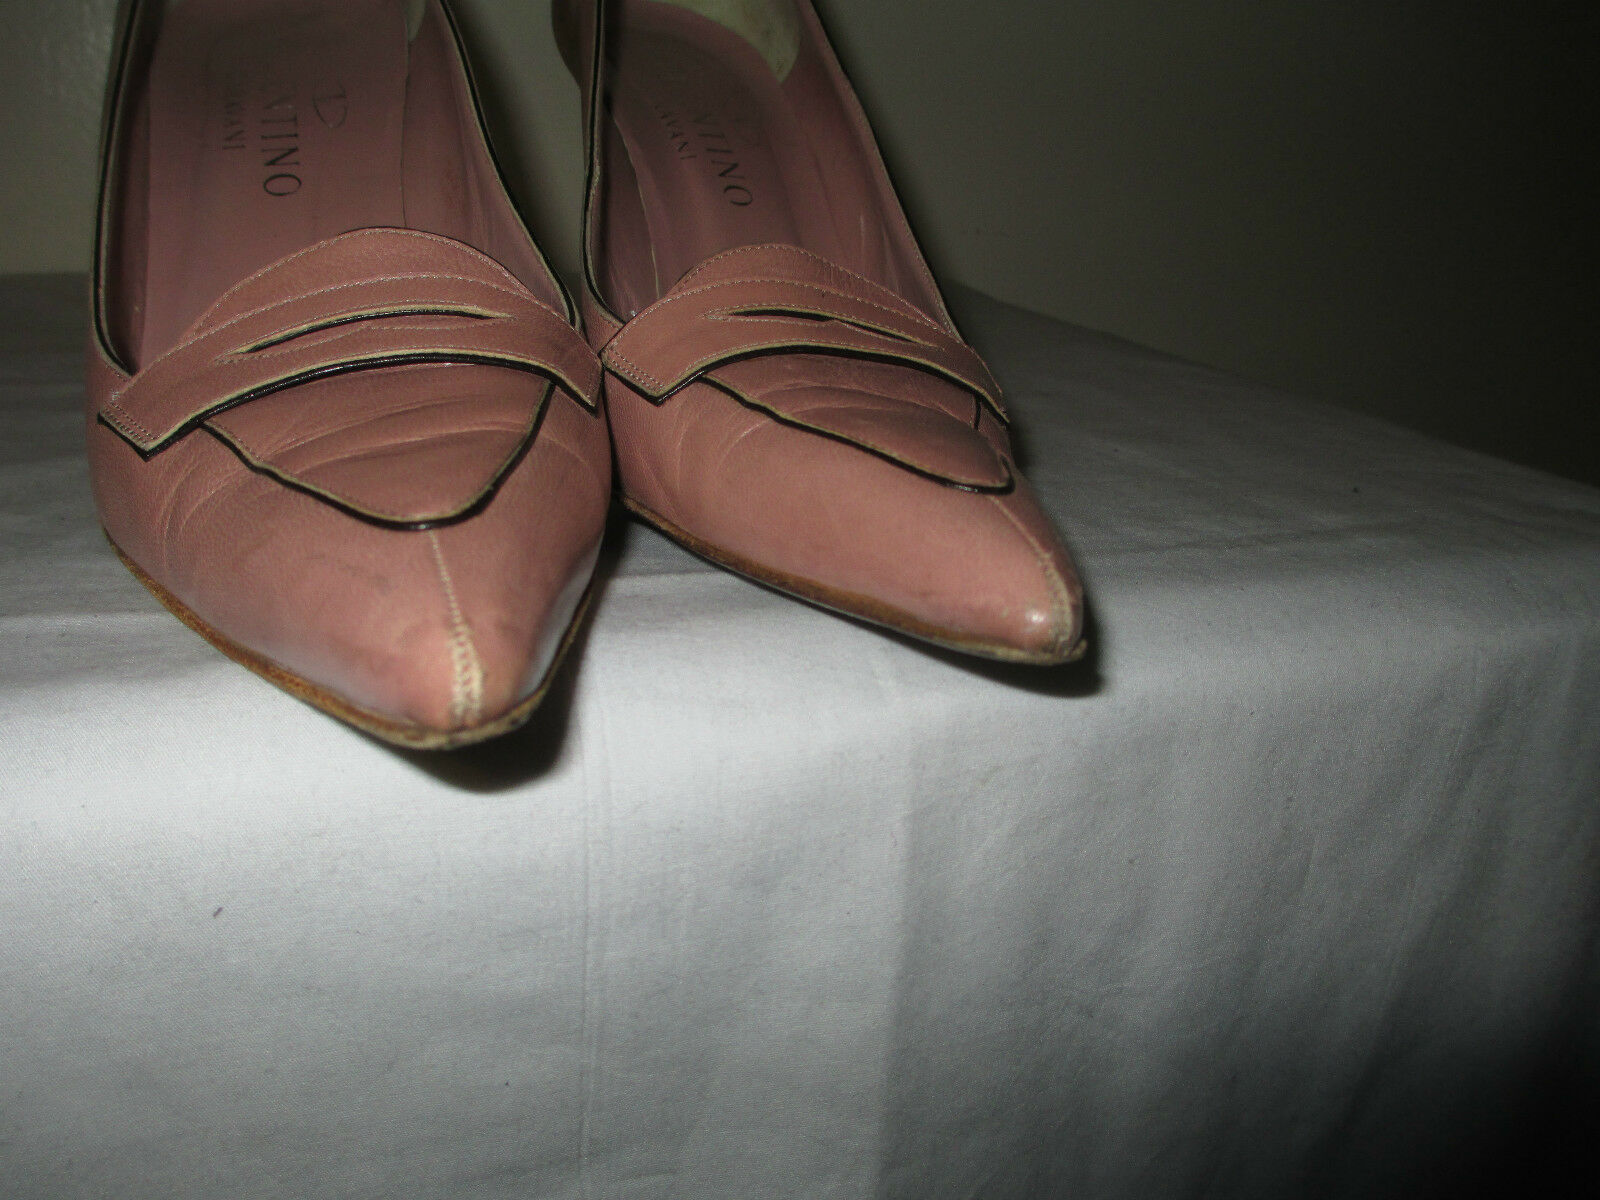 Valentino GARAVANI Point-Toe Nude Leather Heel schuhe schuhe schuhe 38.5 4cf7f7